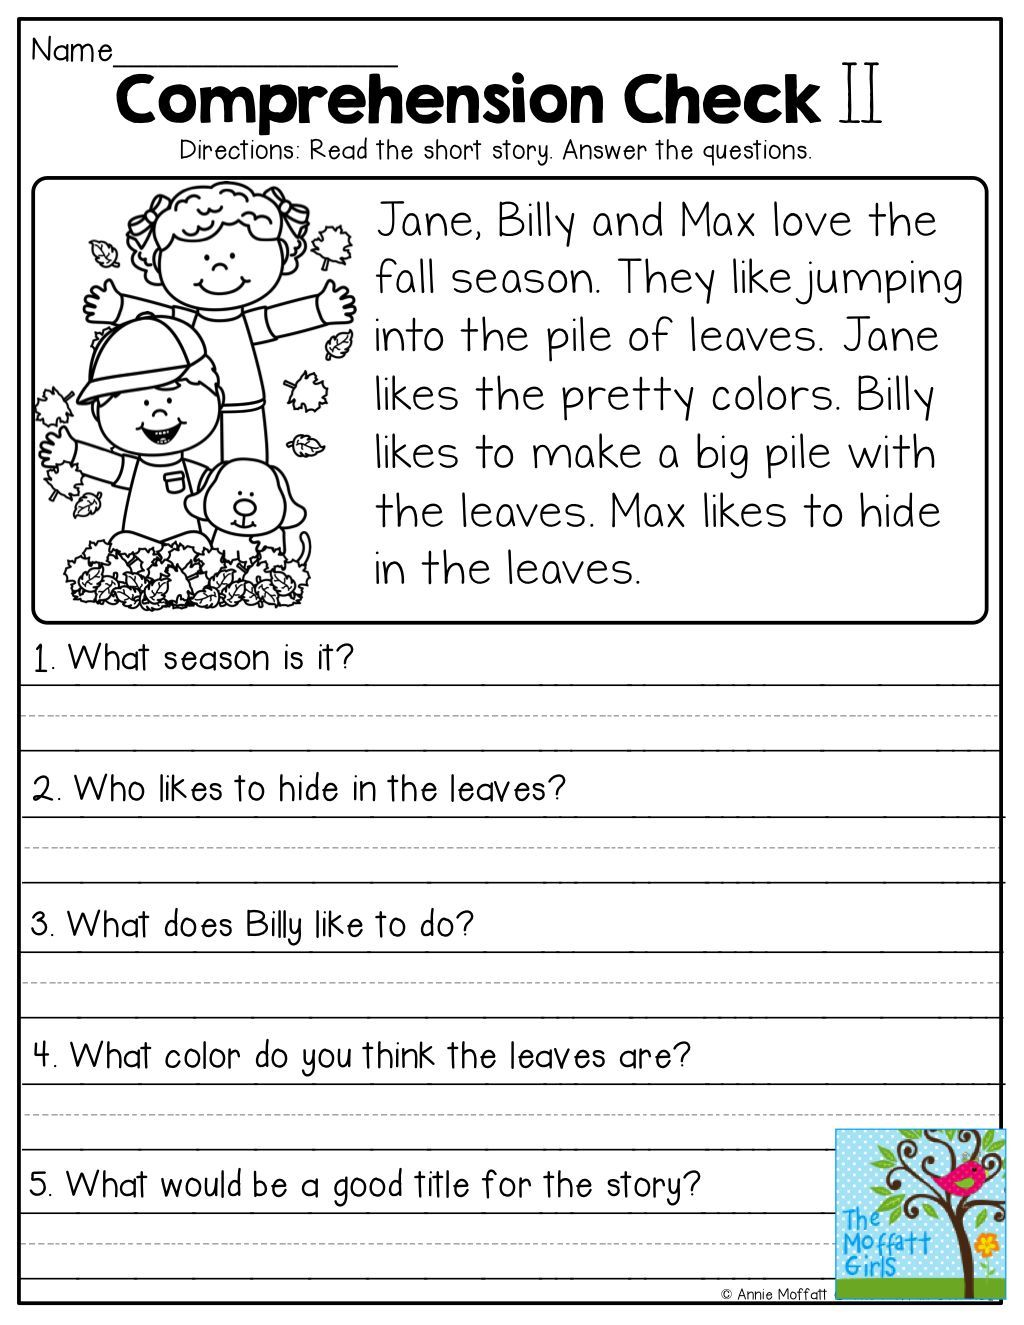 Worksheet Short Story With Comprehension Questions 1000 images about comprehension on pinterest penguins simple stories and comprehension